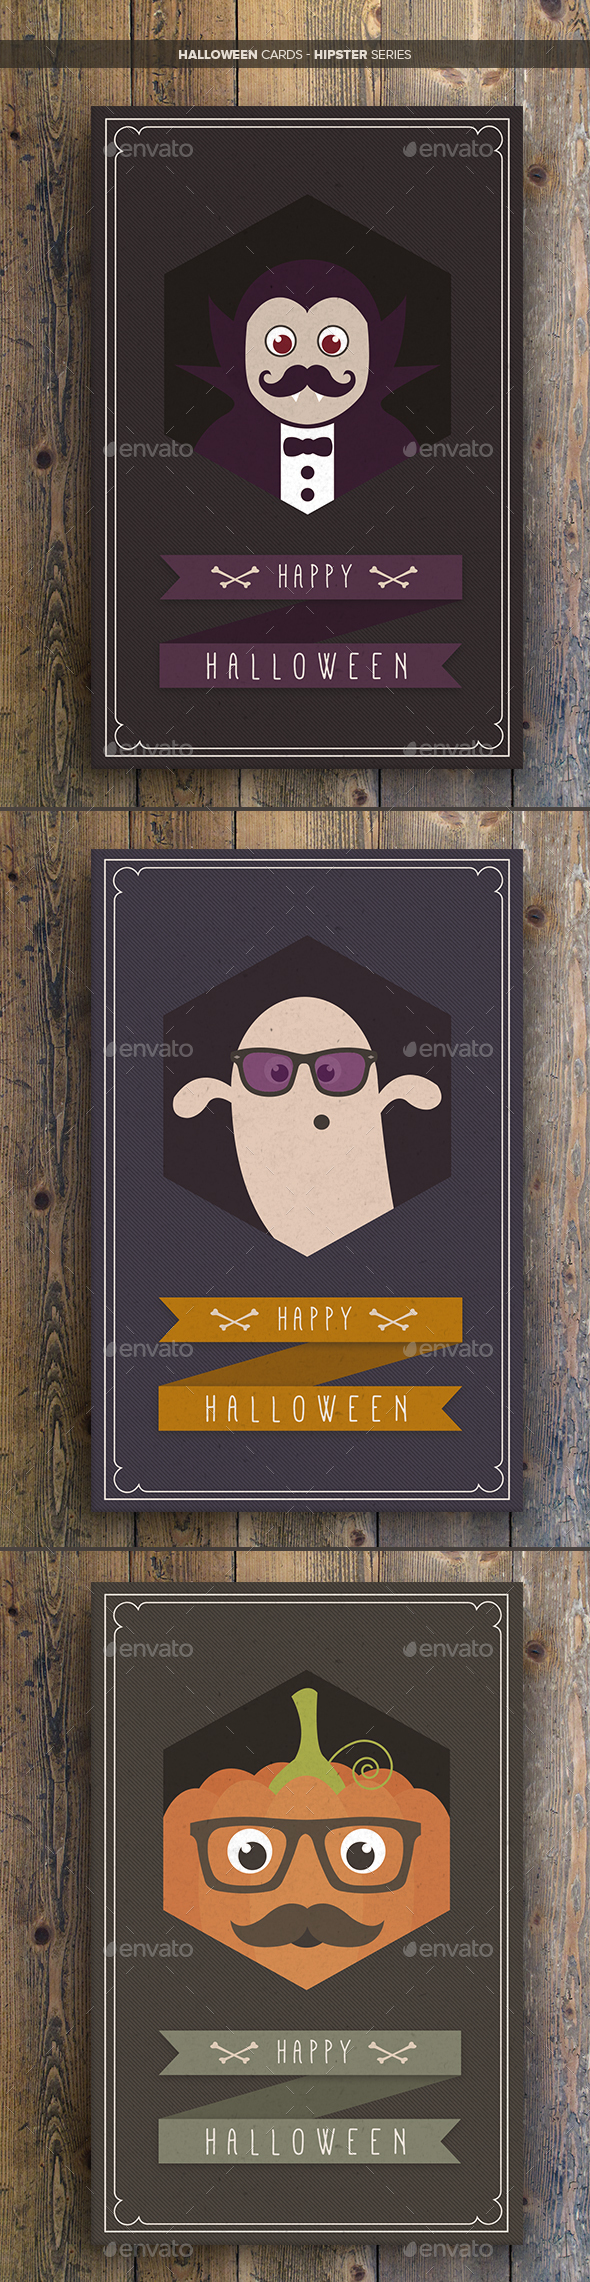 Halloween Cards - Hipster Series - Holiday Greeting Cards